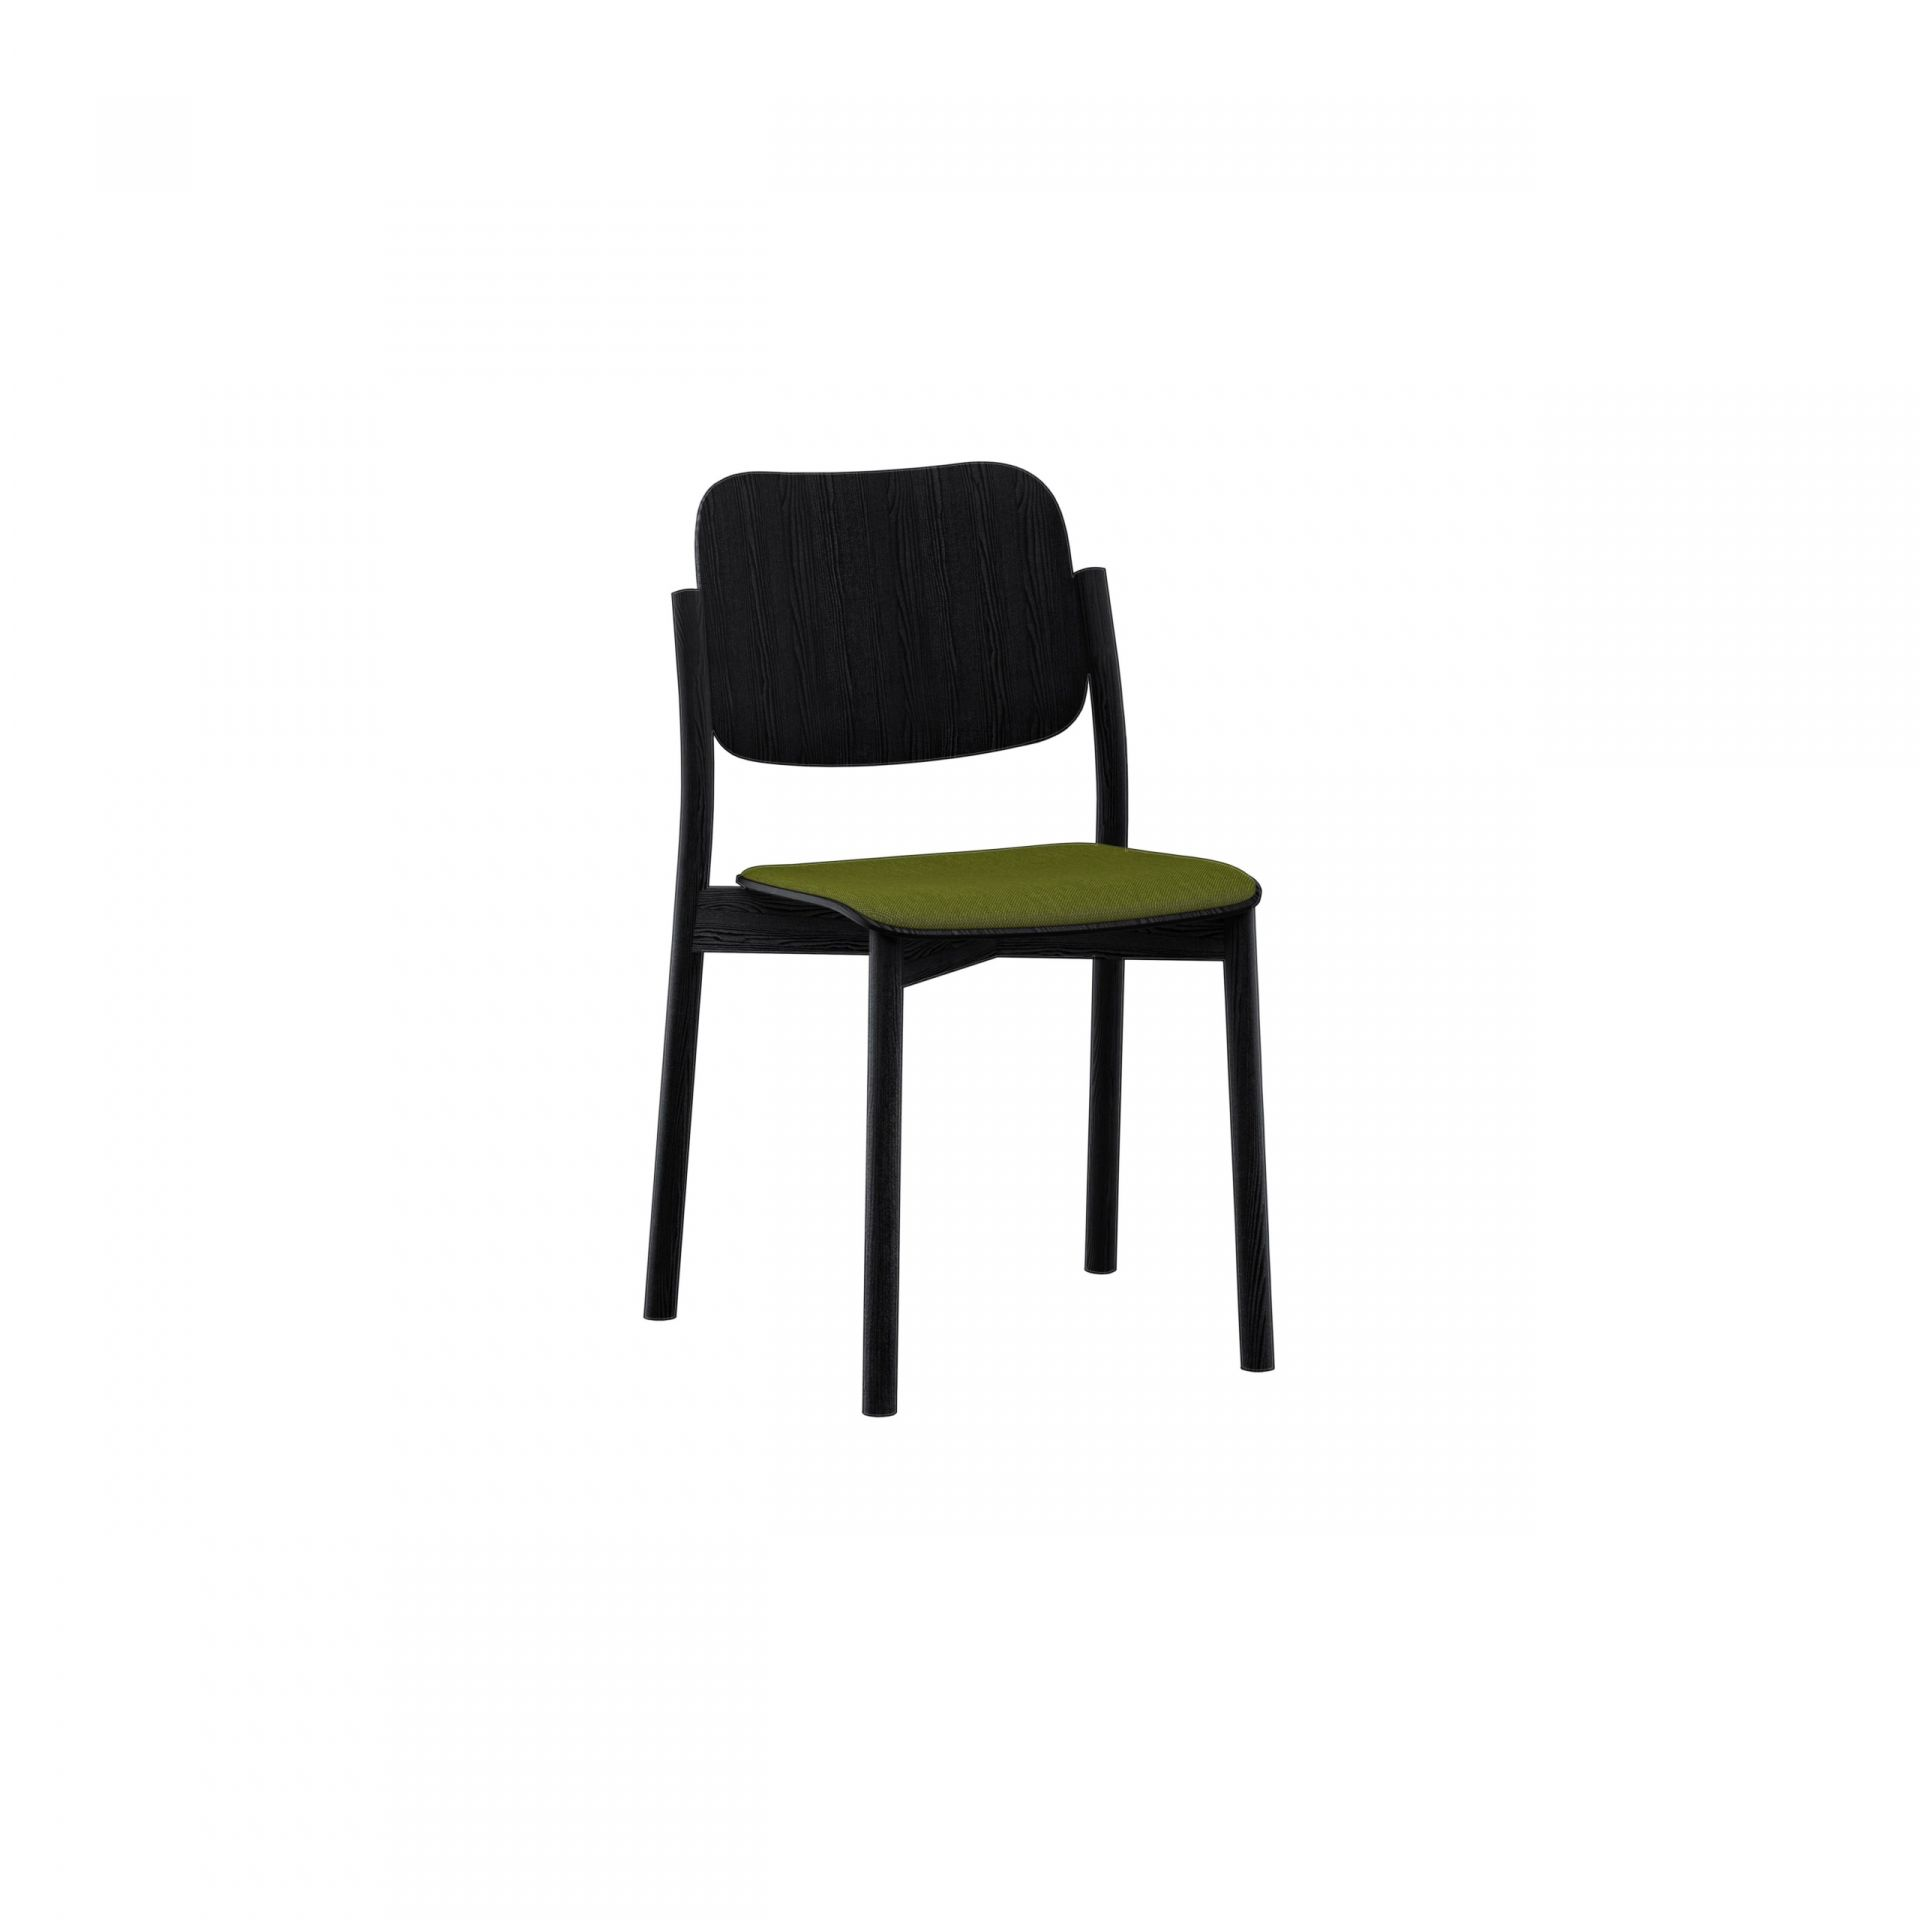 Zoe Wooden chair product image 5